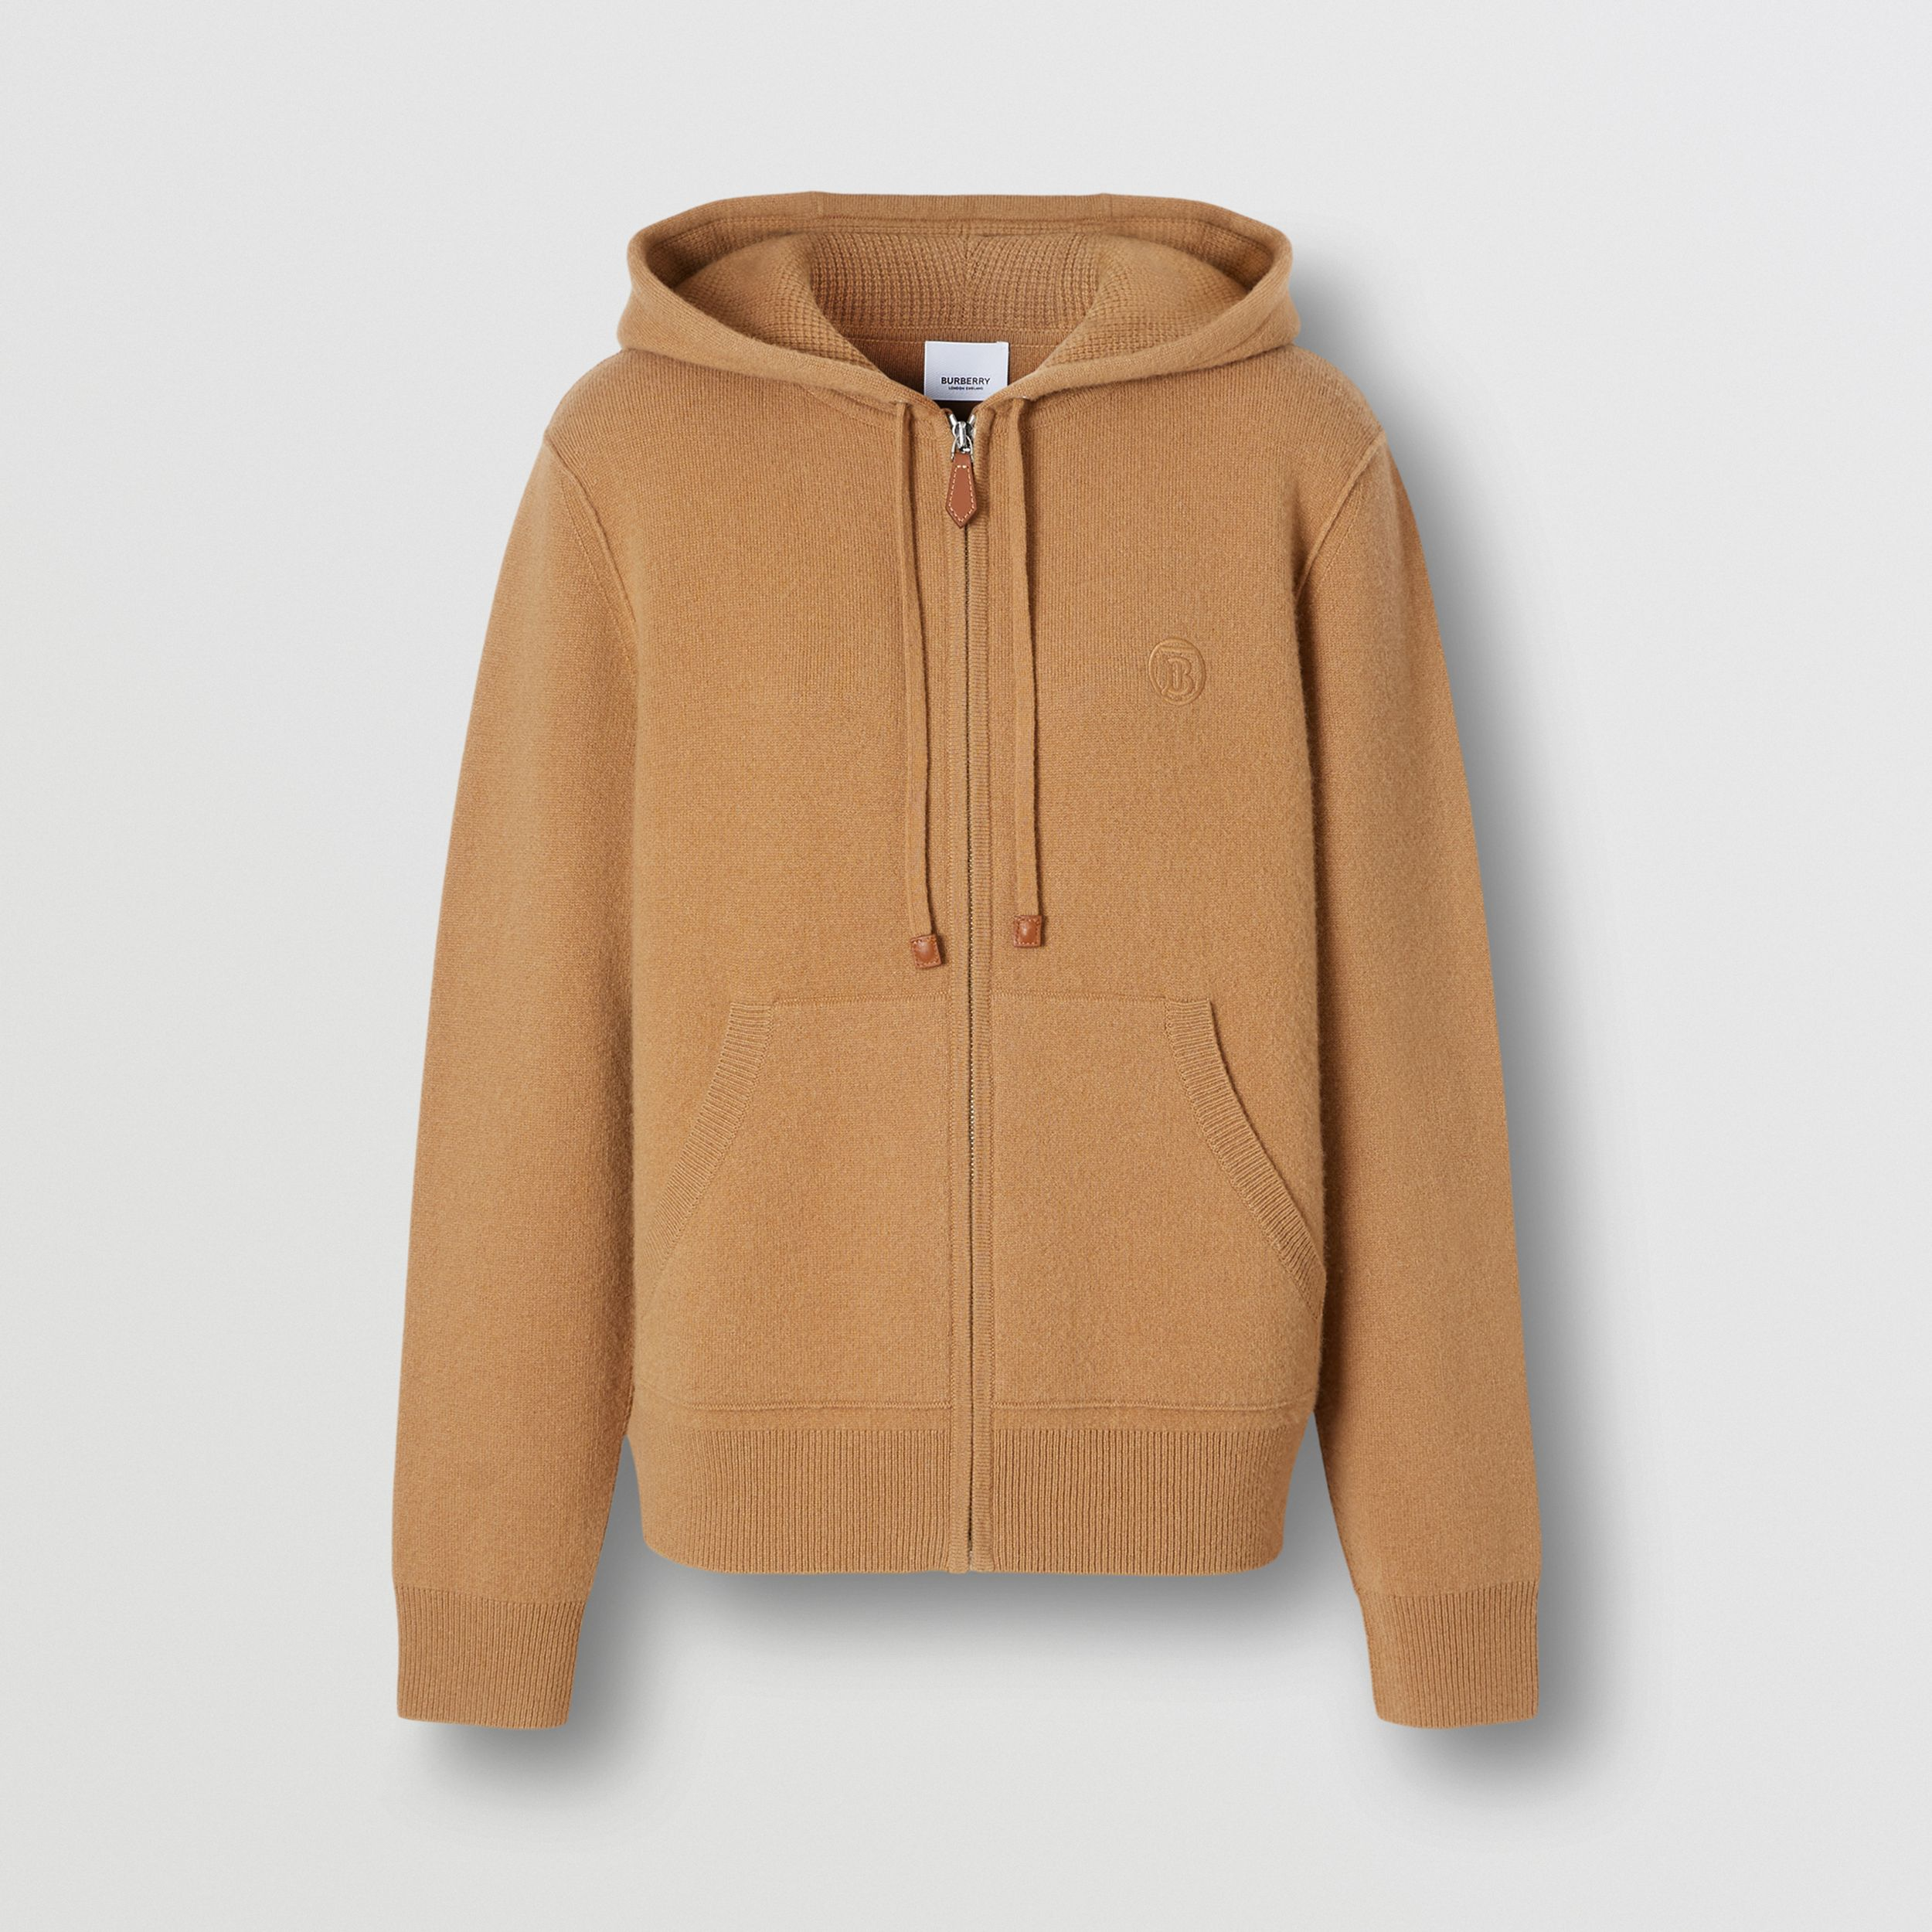 Monogram Motif Cashmere Blend Hooded Top in Camel - Women | Burberry Canada - 4